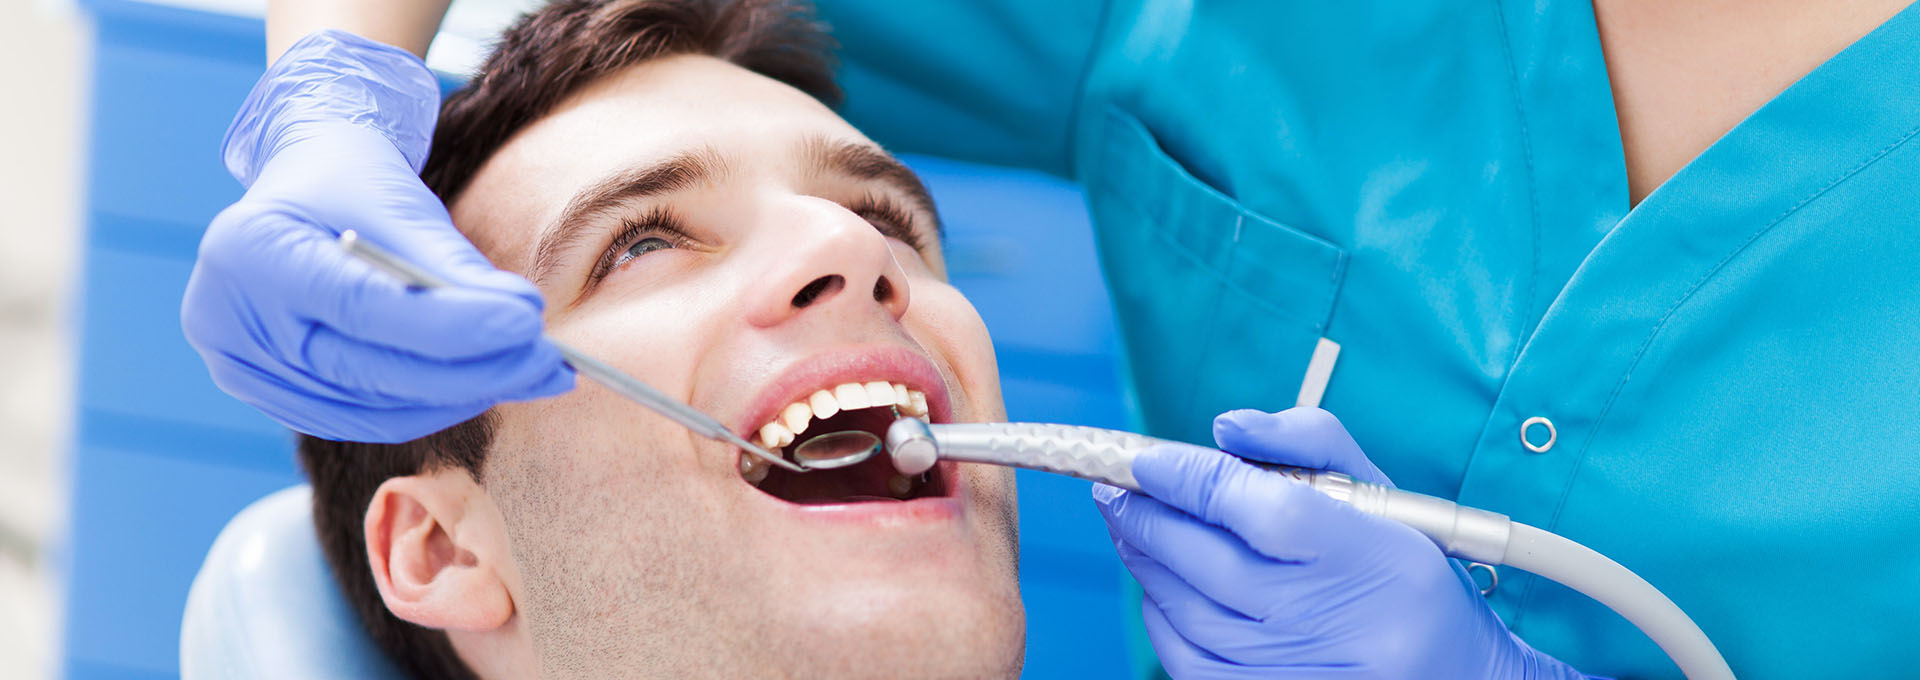 Dental Care Plans and Dental Insurance